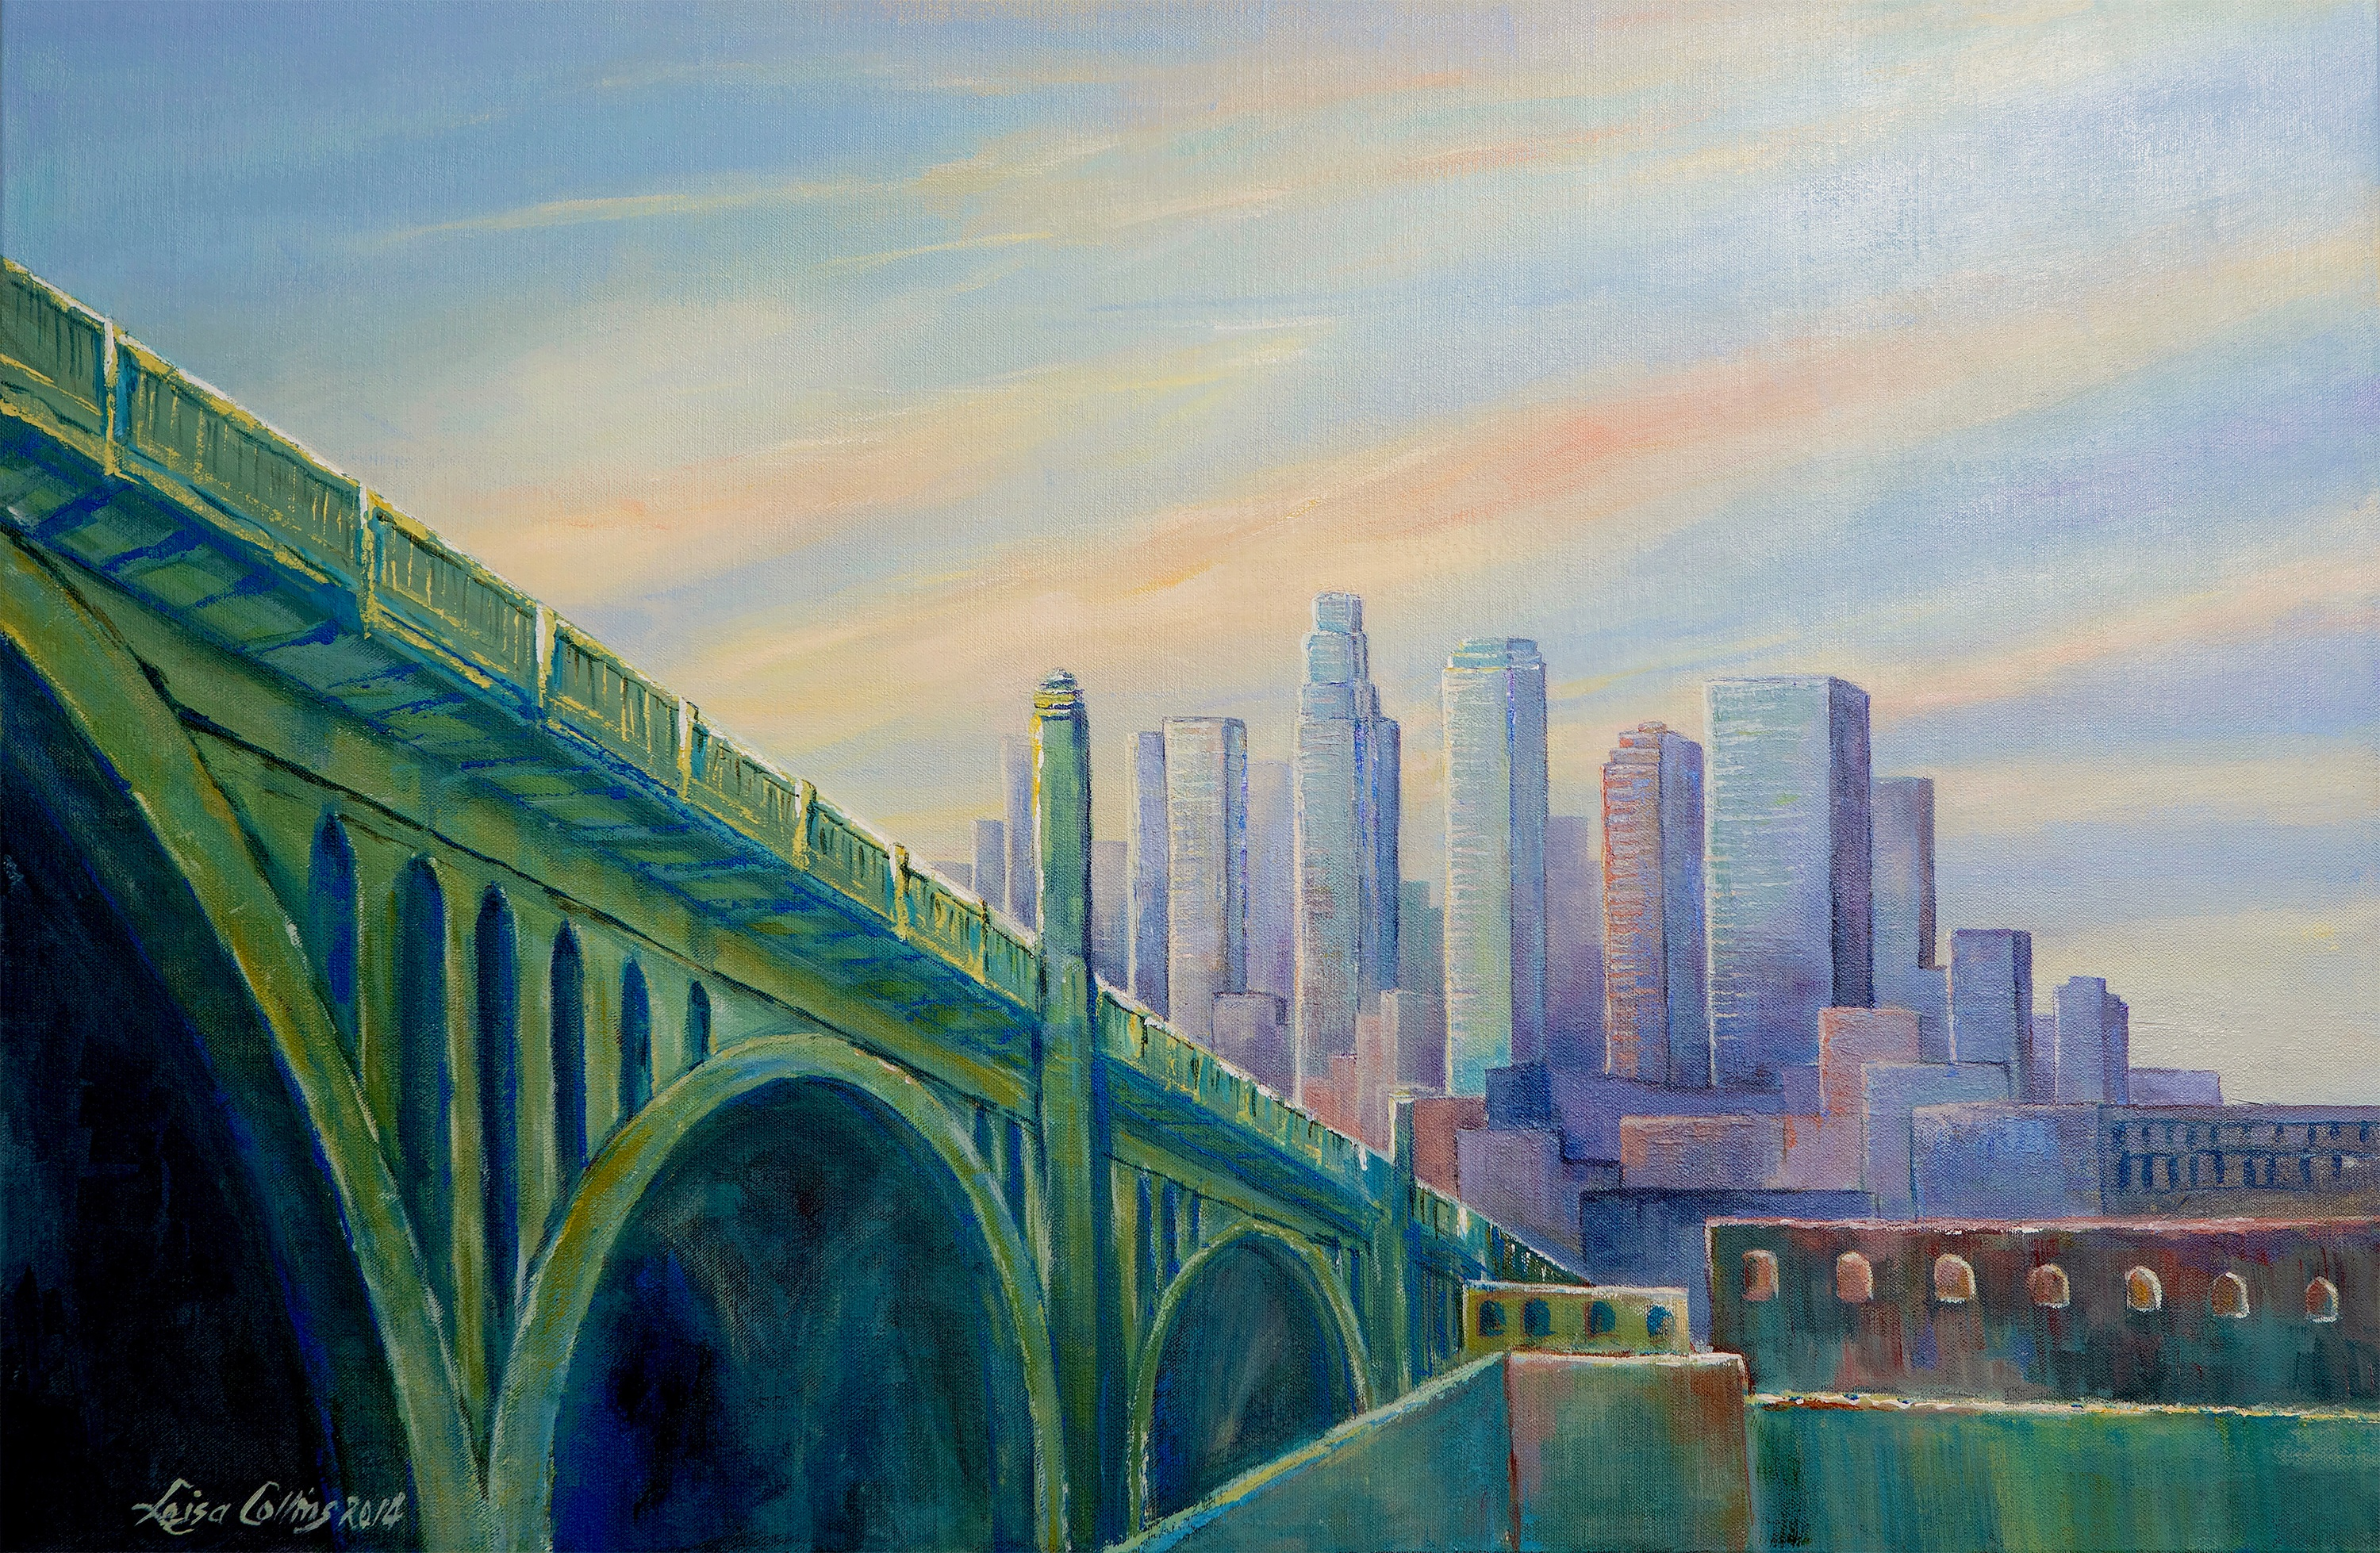 Downtown los angeles cityscape at dawn ryfzvh